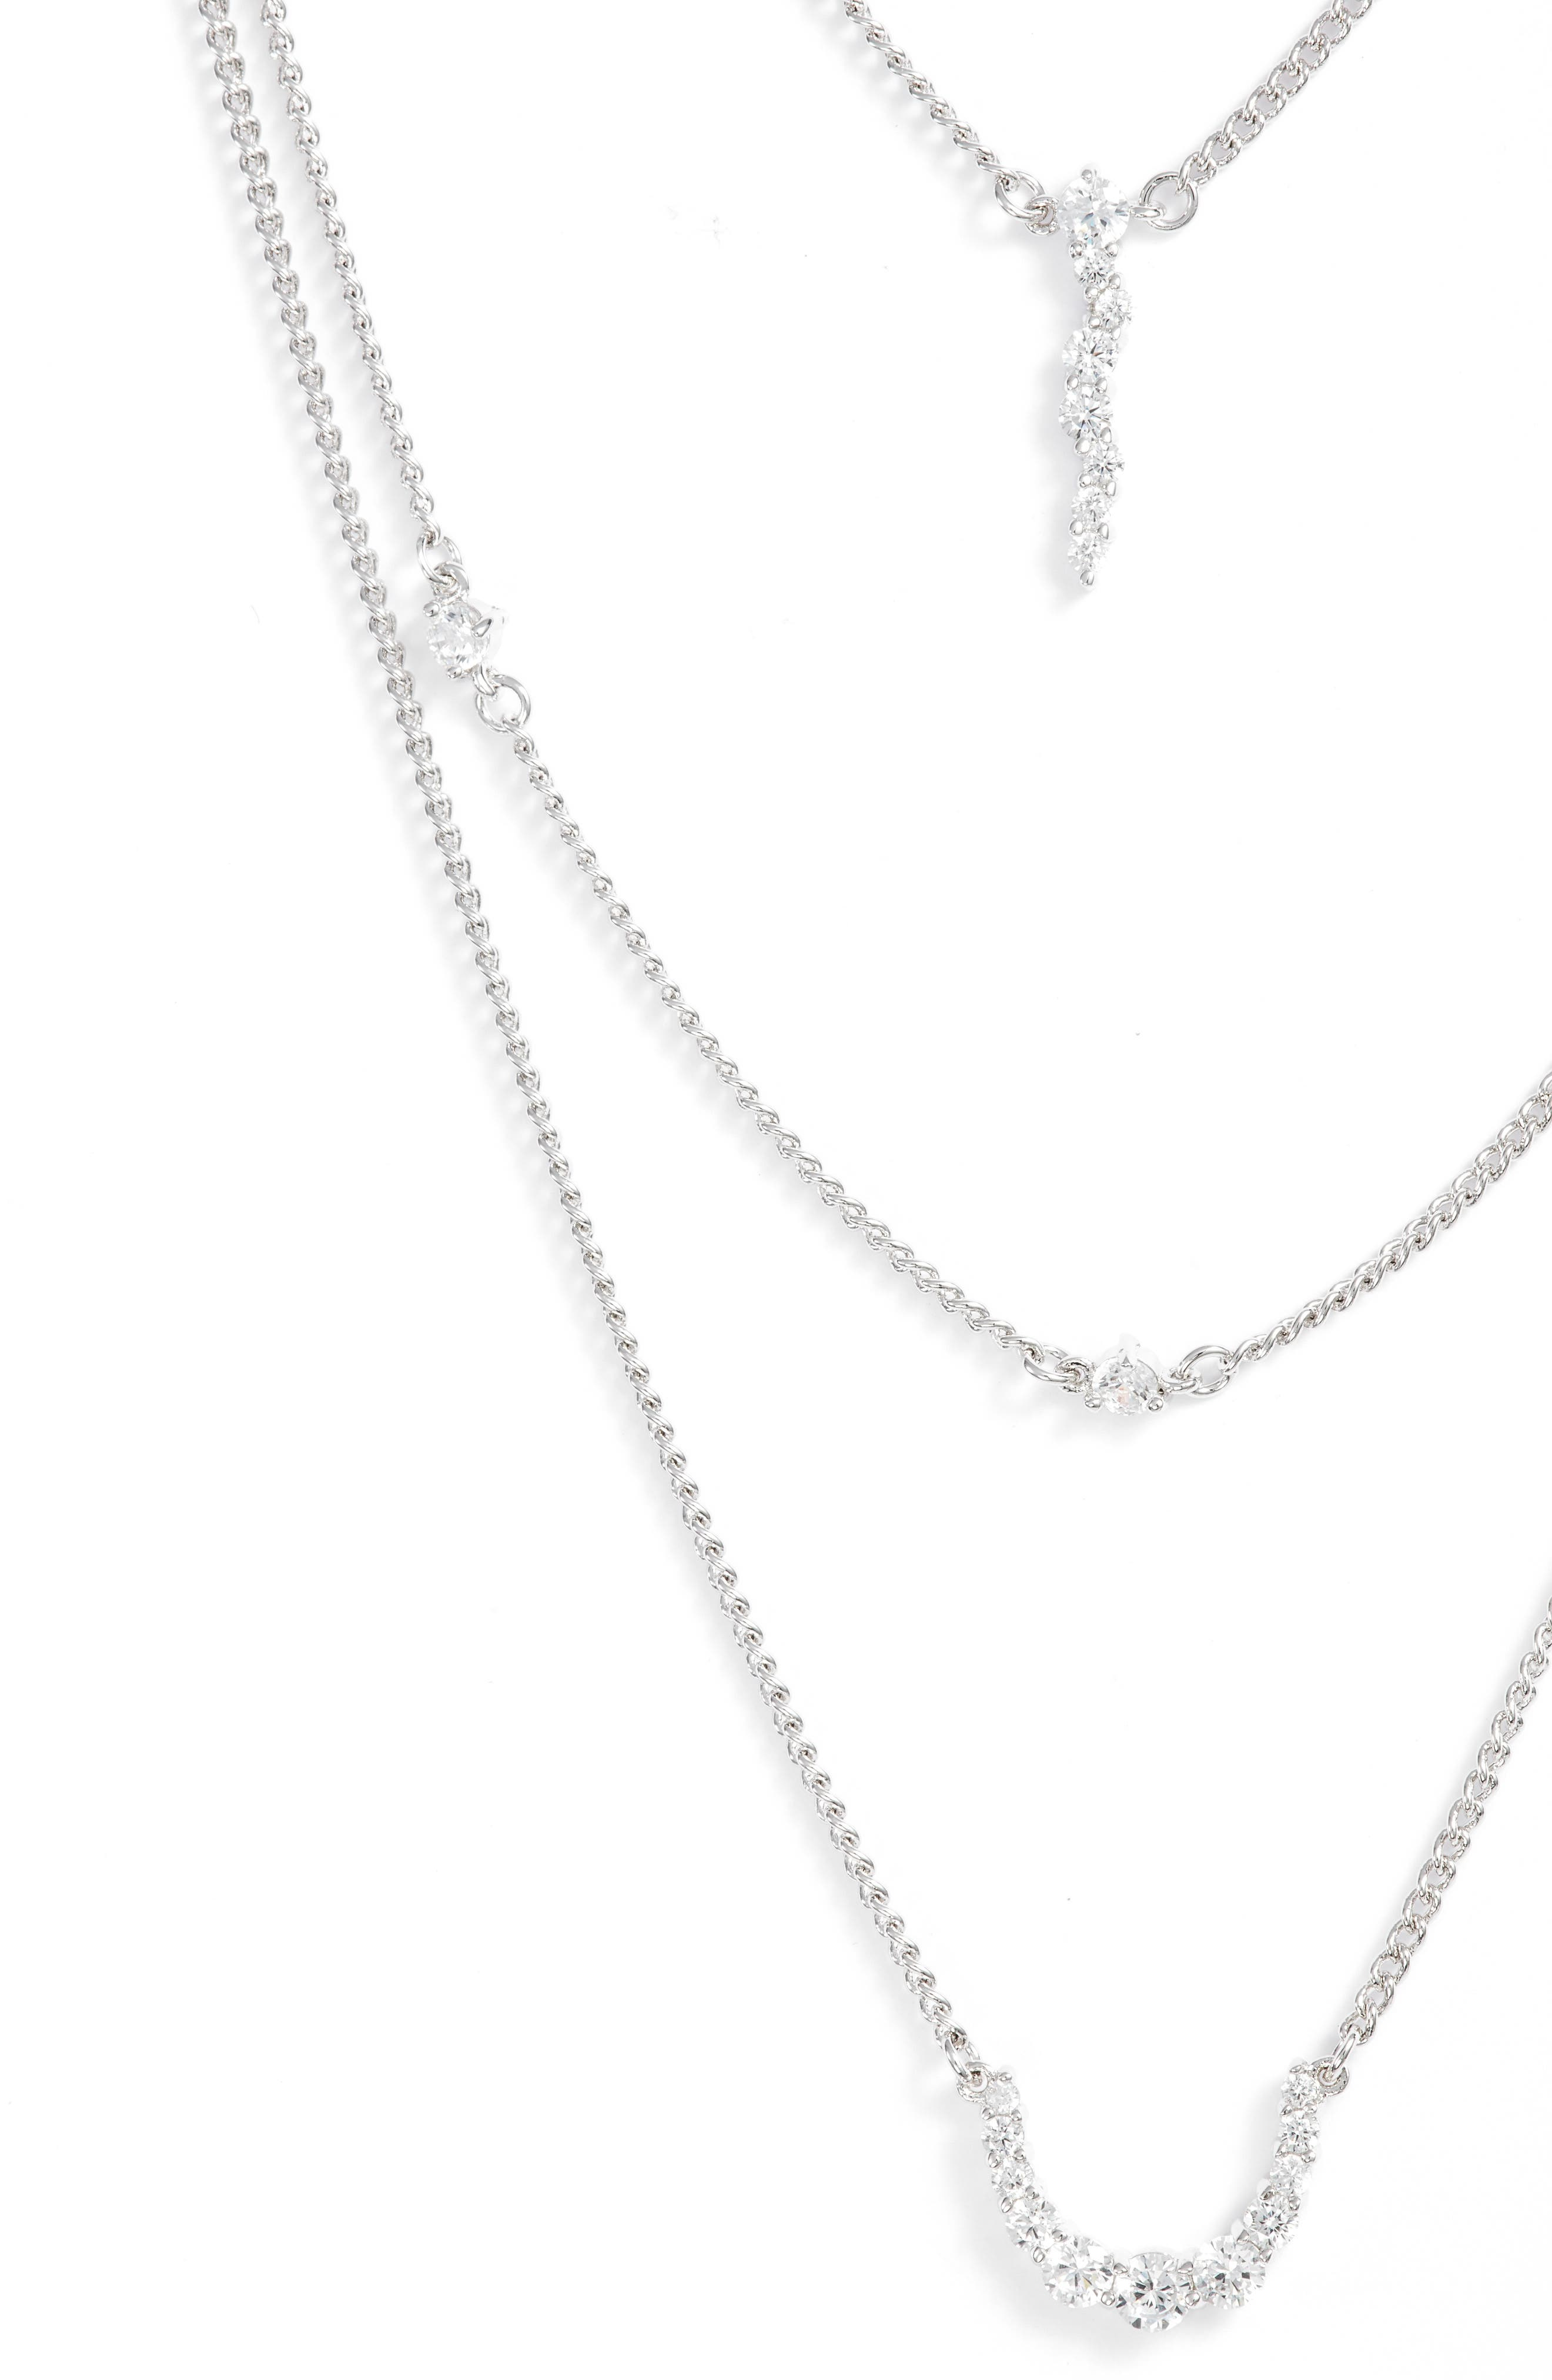 Sterling Silver Faye Layered Necklace,                             Alternate thumbnail 2, color,                             SILVER